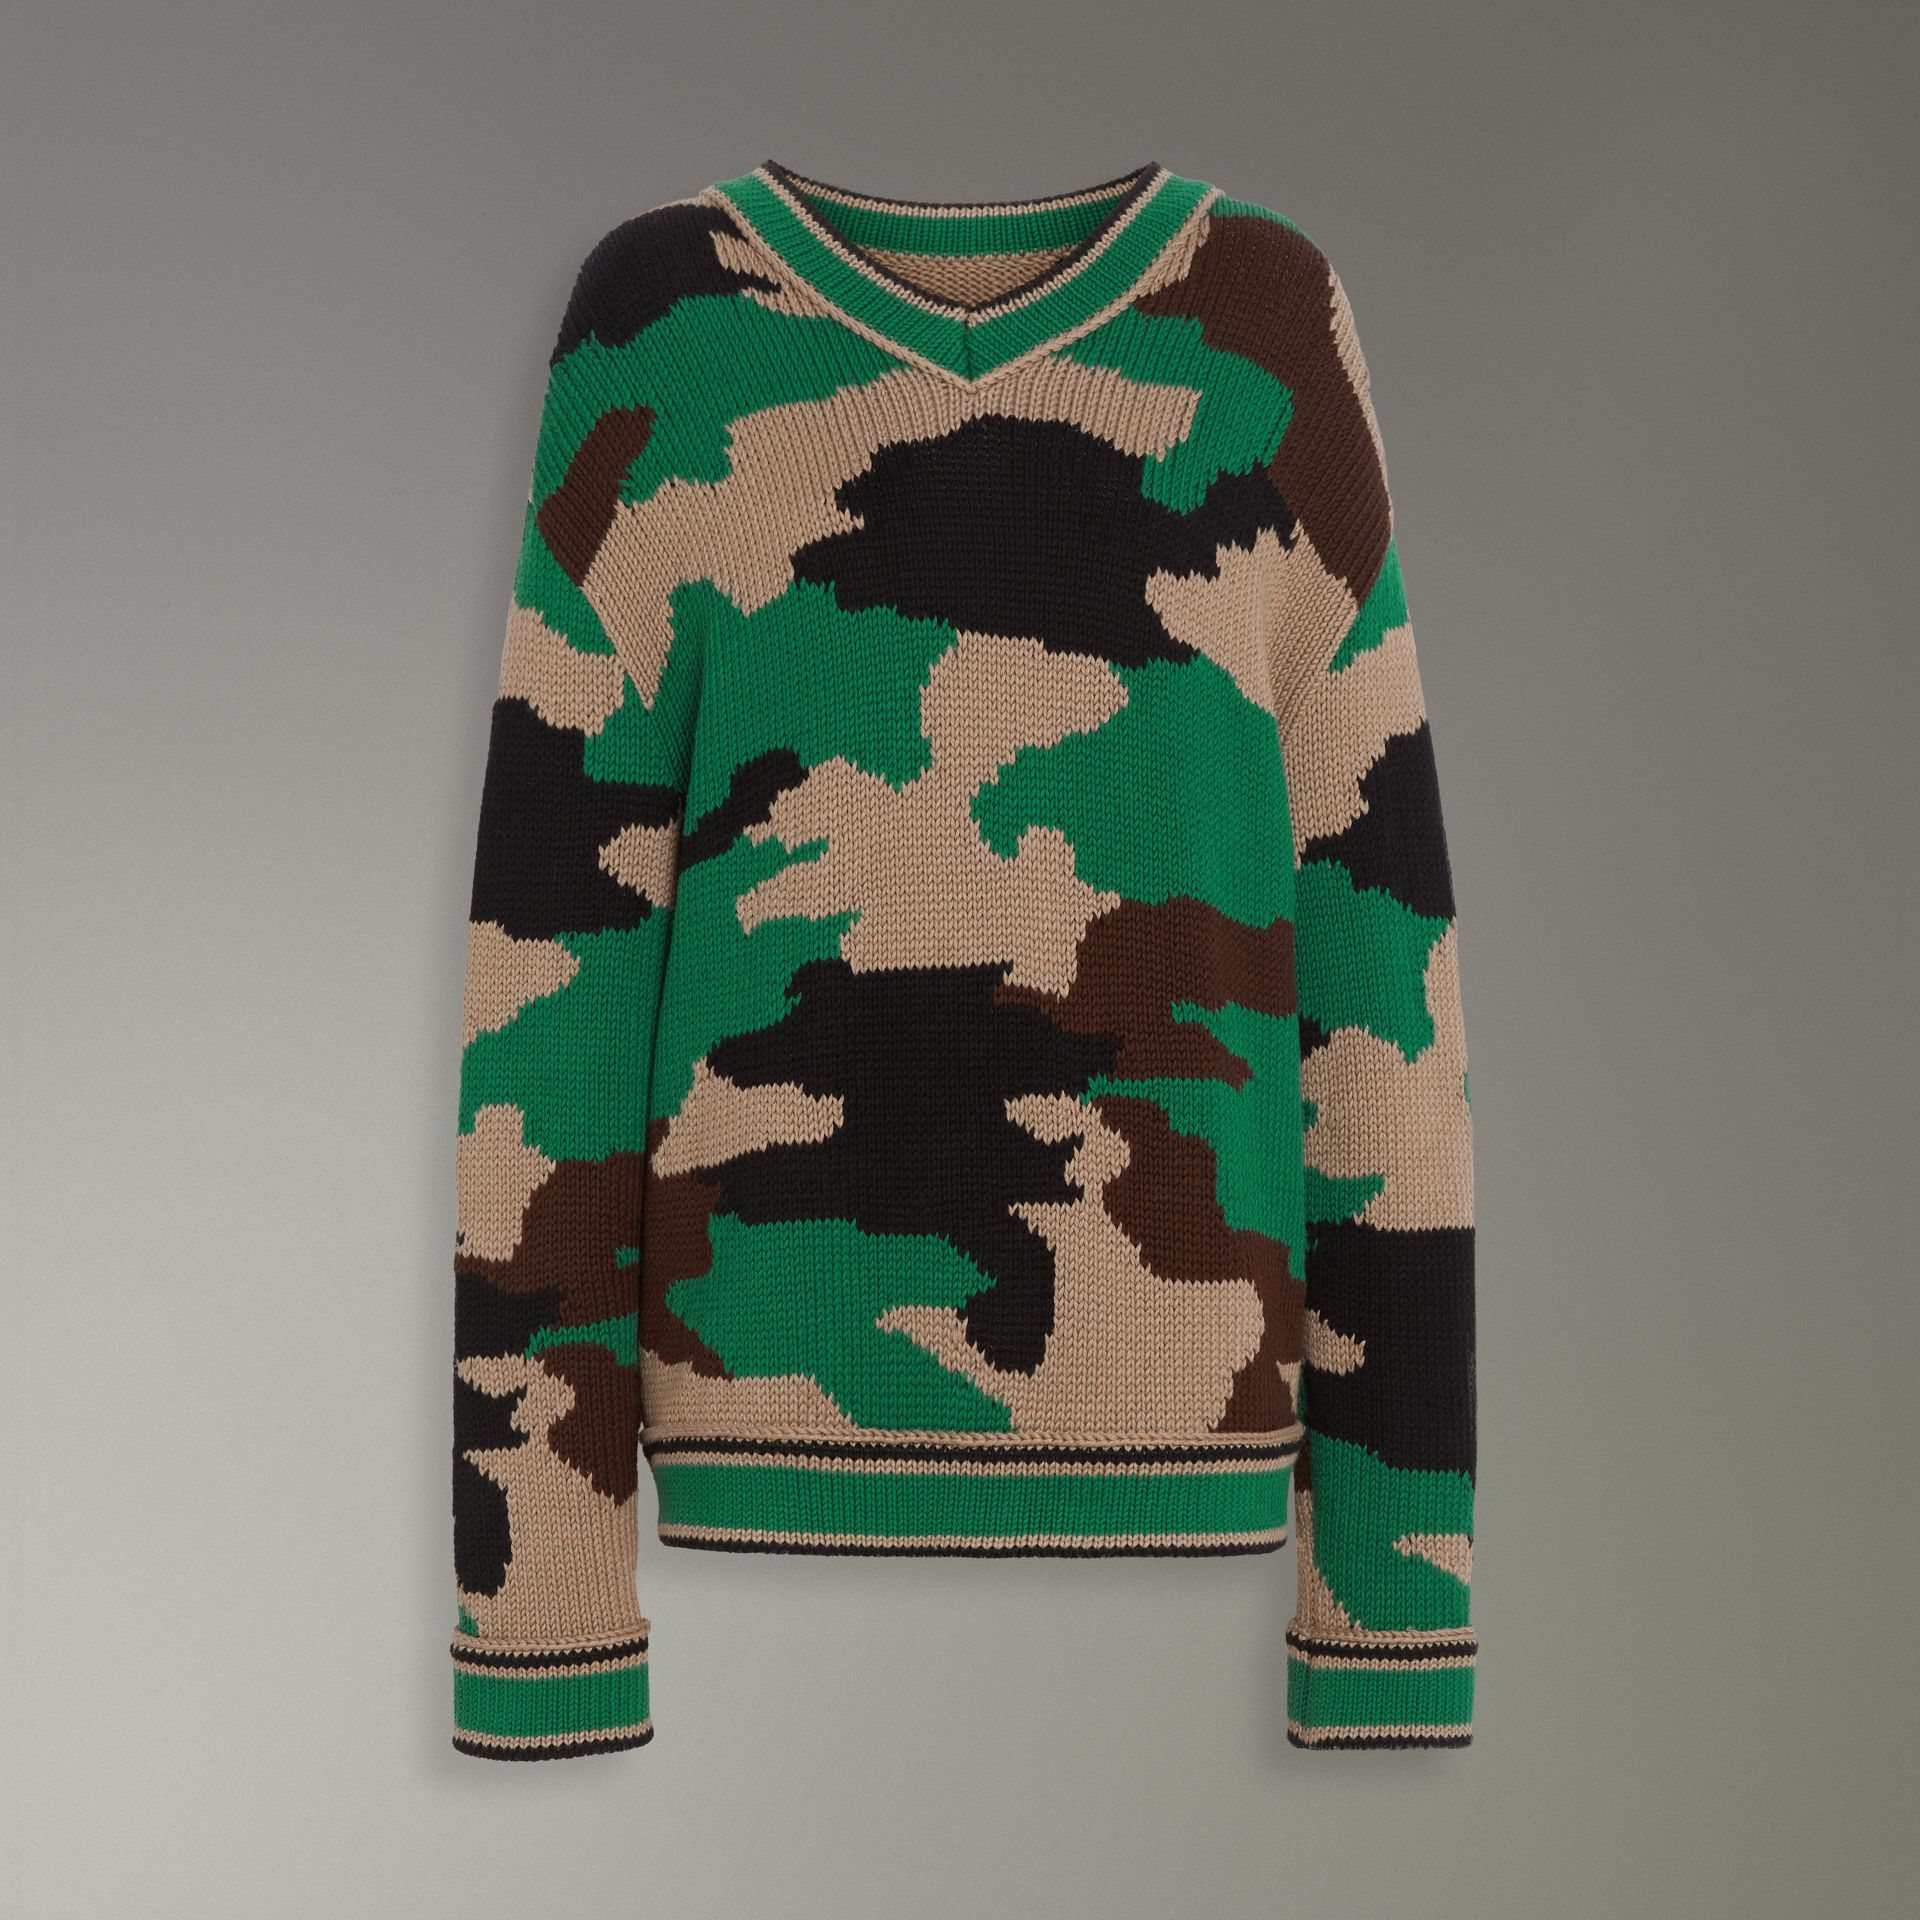 Camouflage Intarsia Cotton V-neck Sweater in Military Khaki - Women | Burberry Australia - gallery image 3